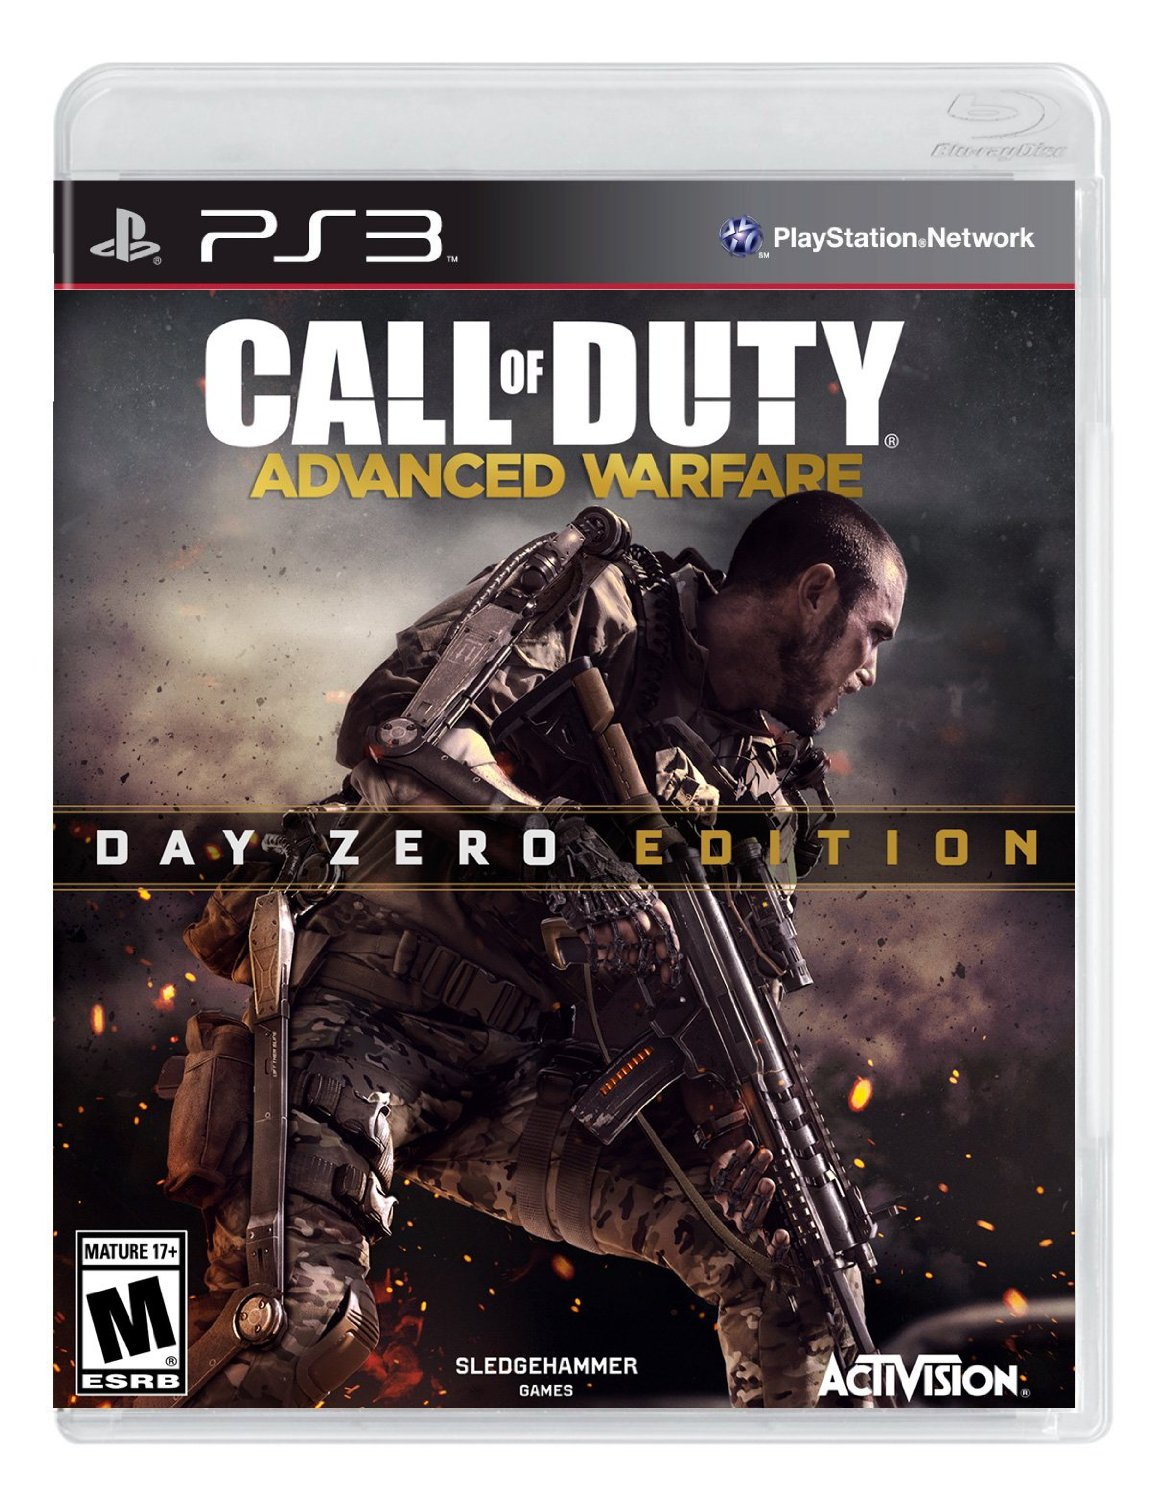 COD Call of Duty Advanced Warfare for PS3 US